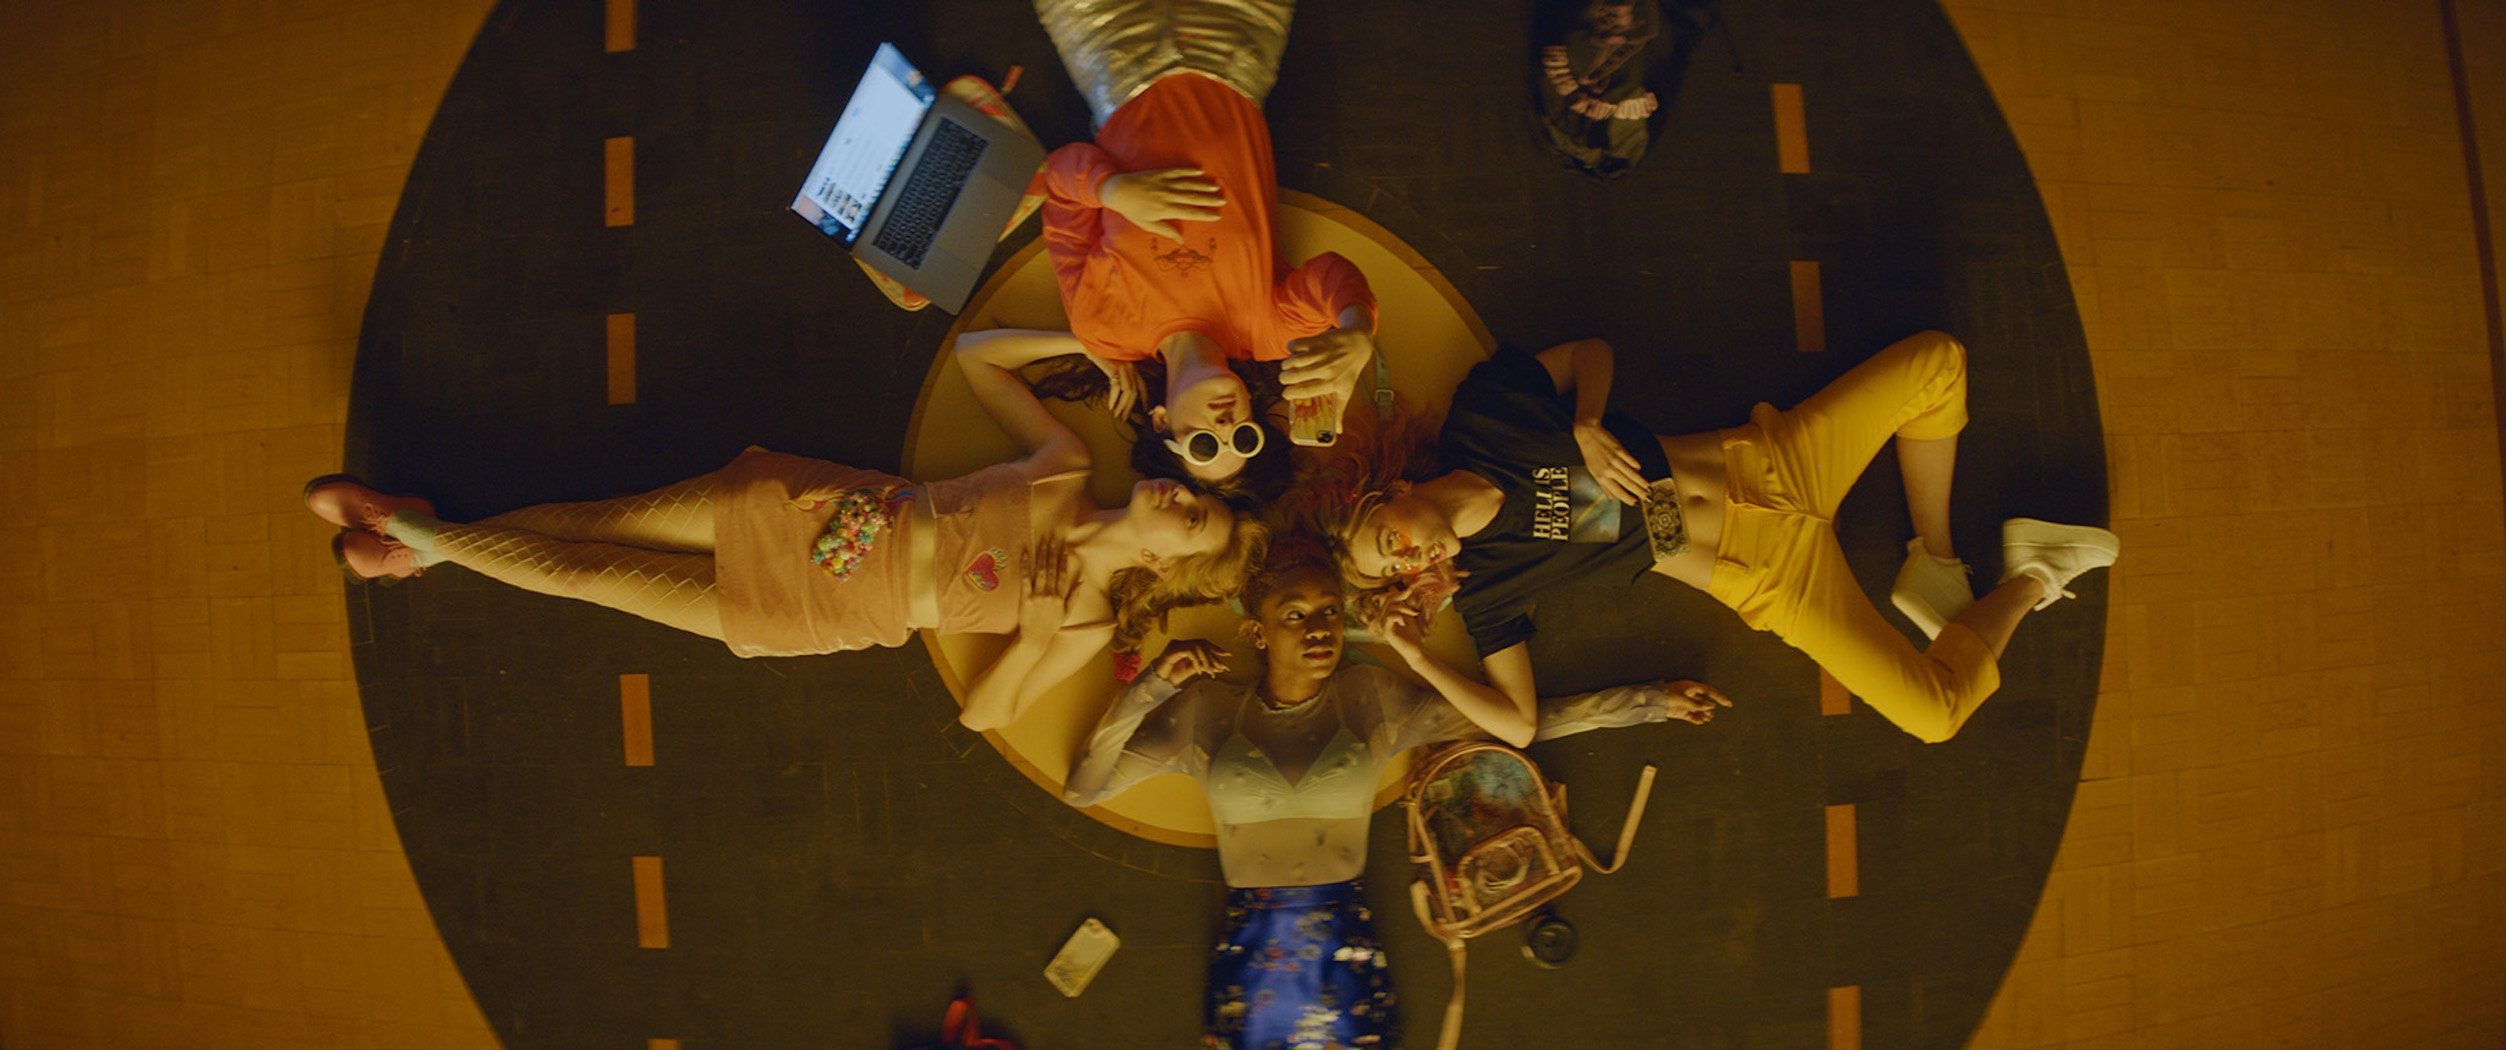 "Odessa Young, Hari Nef, Suki Waterhouse and Abra in ""Assassination Nation."""